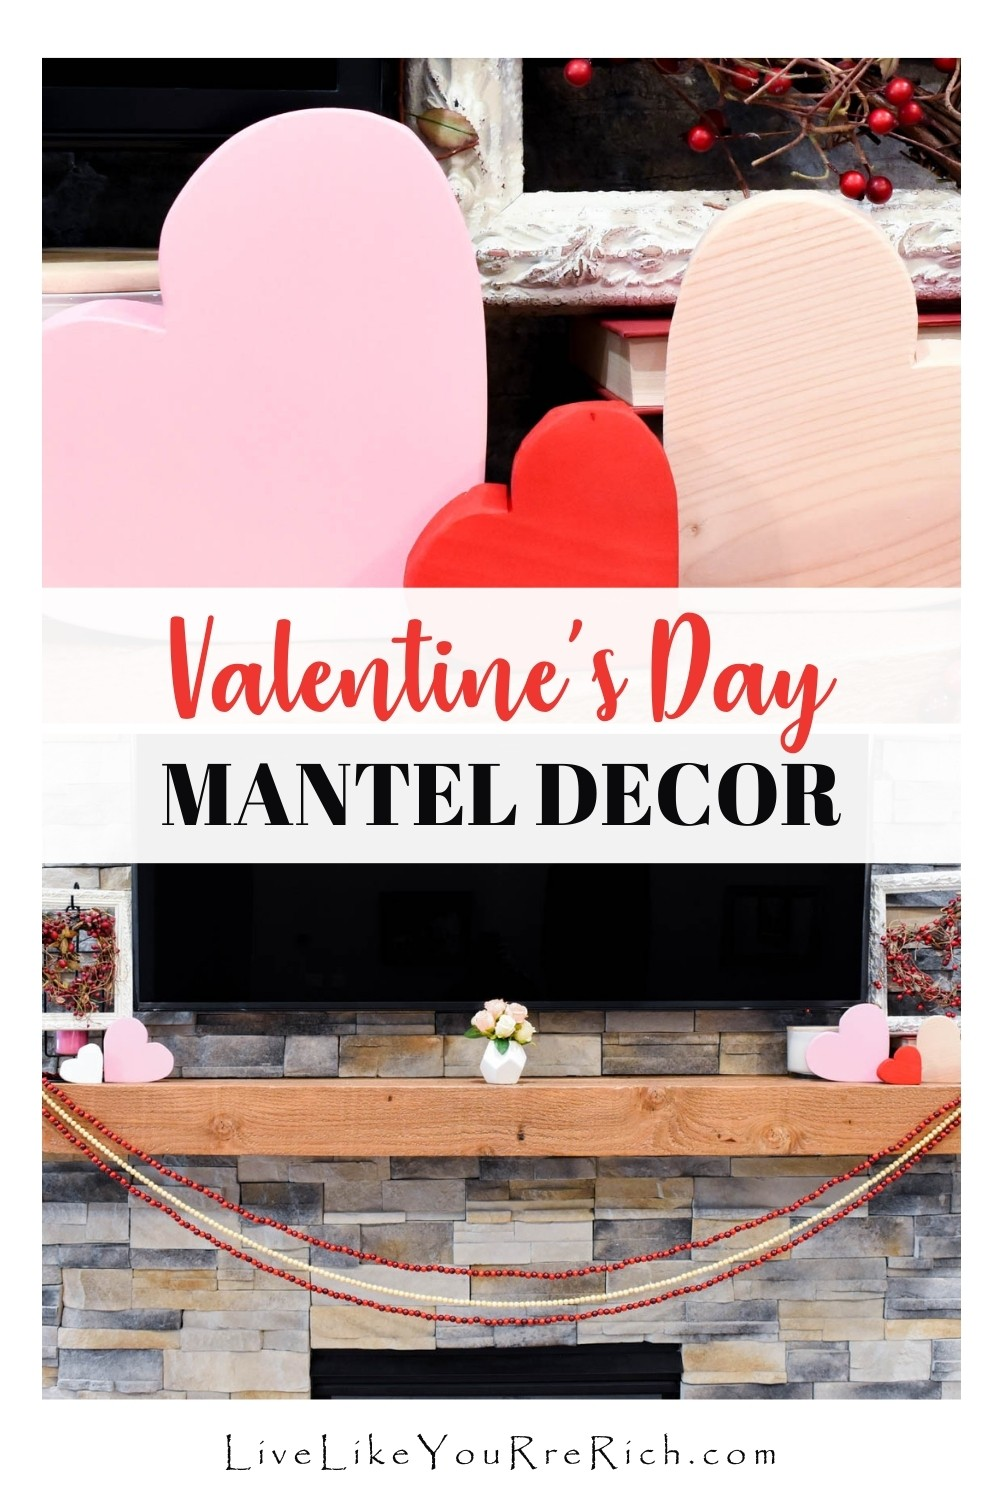 This Valentine's Day Mantel Decor is styled in a shabby chic decorating style. I think it turned out quite cute. Although I don't often decorate shabby chic, I think it is a super cute decor style.